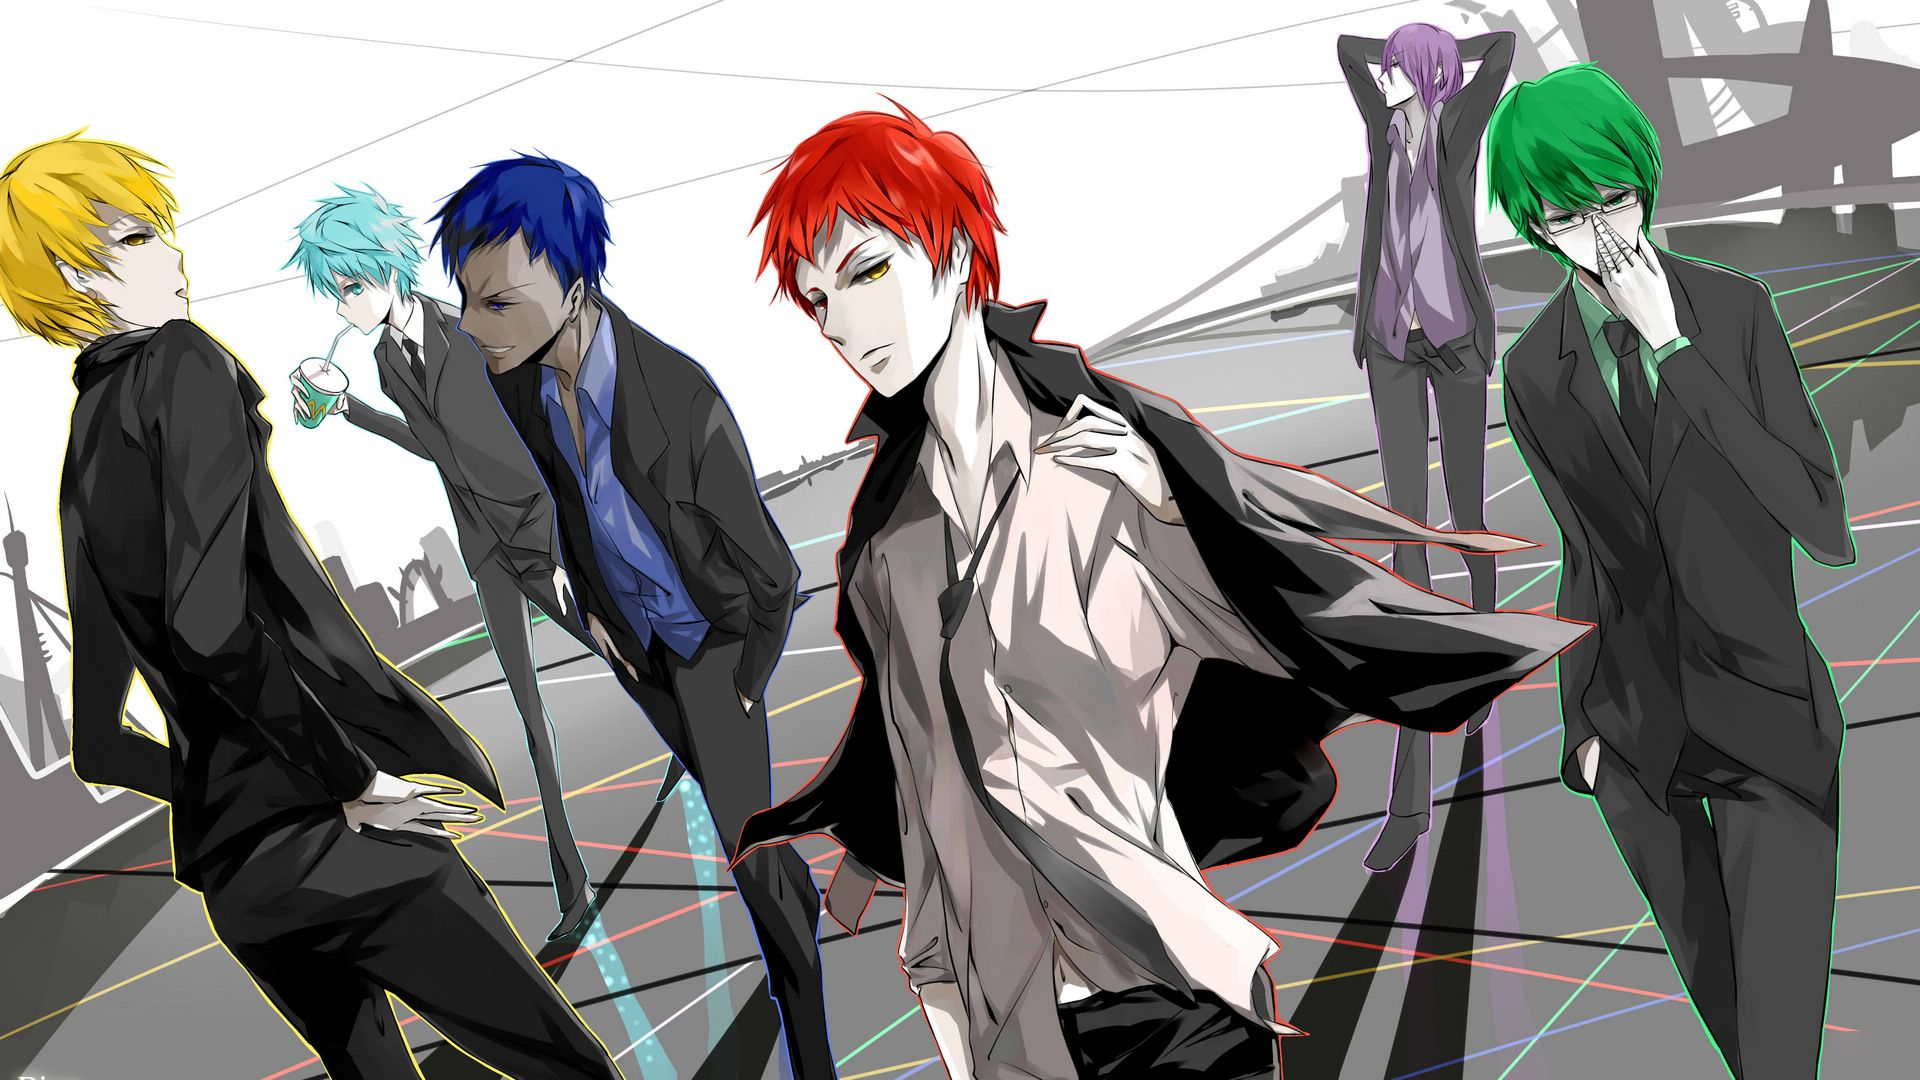 Kuroko no basket hd background httpwallpapers and backgrounds kuroko no basket hd background picture image voltagebd Choice Image